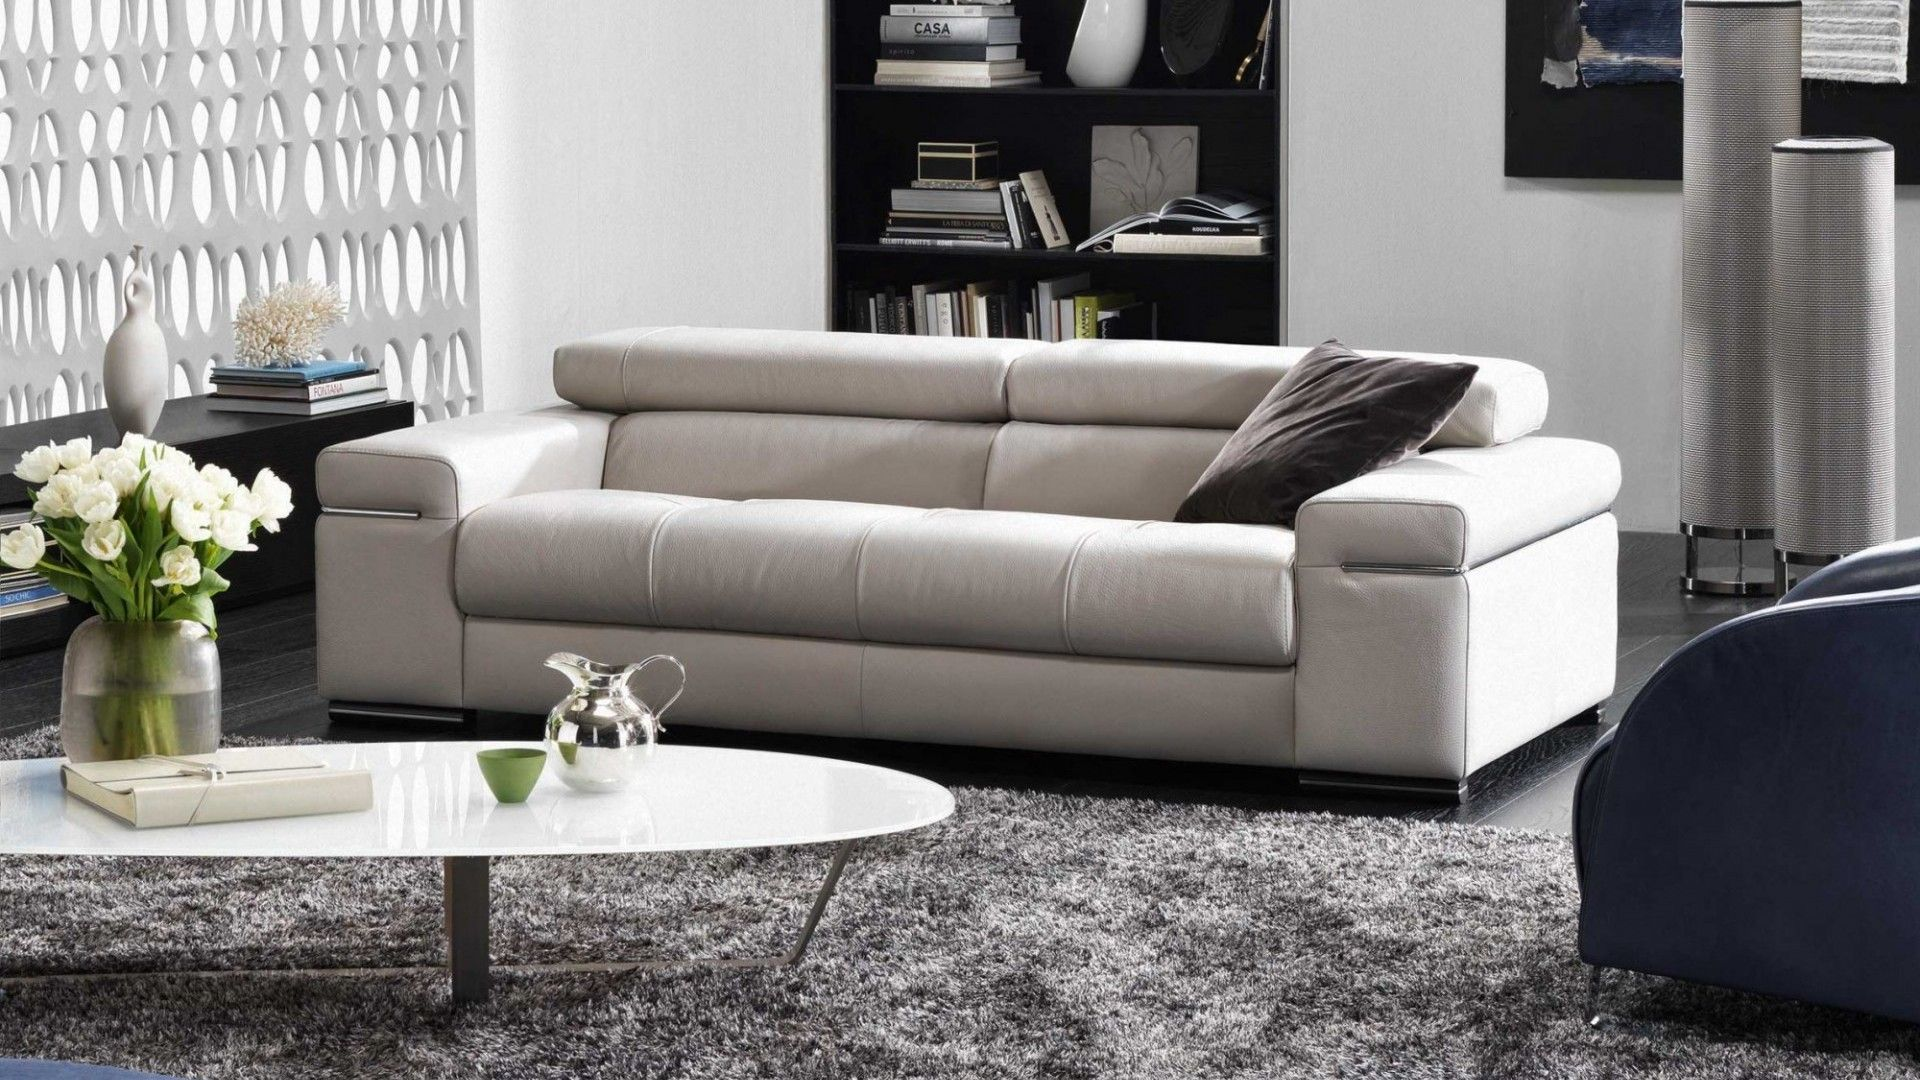 awesome Natuzzi Couch New Natuzzi Couch 85 Sofas and Couches Set